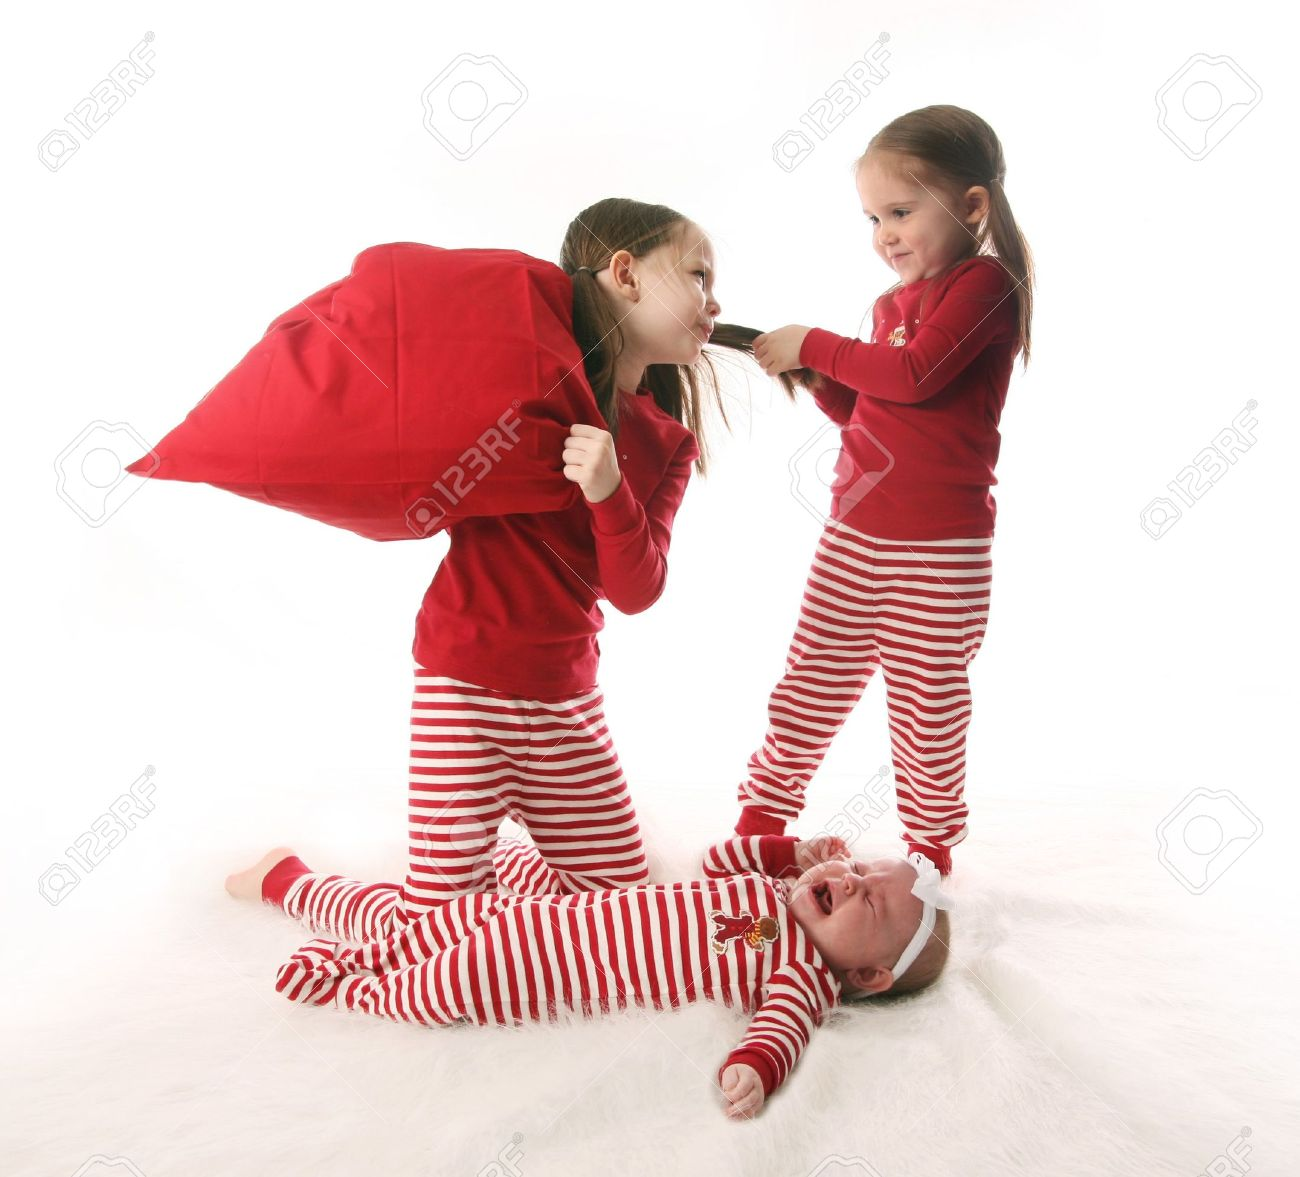 Pajama Images & Stock Pictures. Royalty Free Pajama Photos And ...